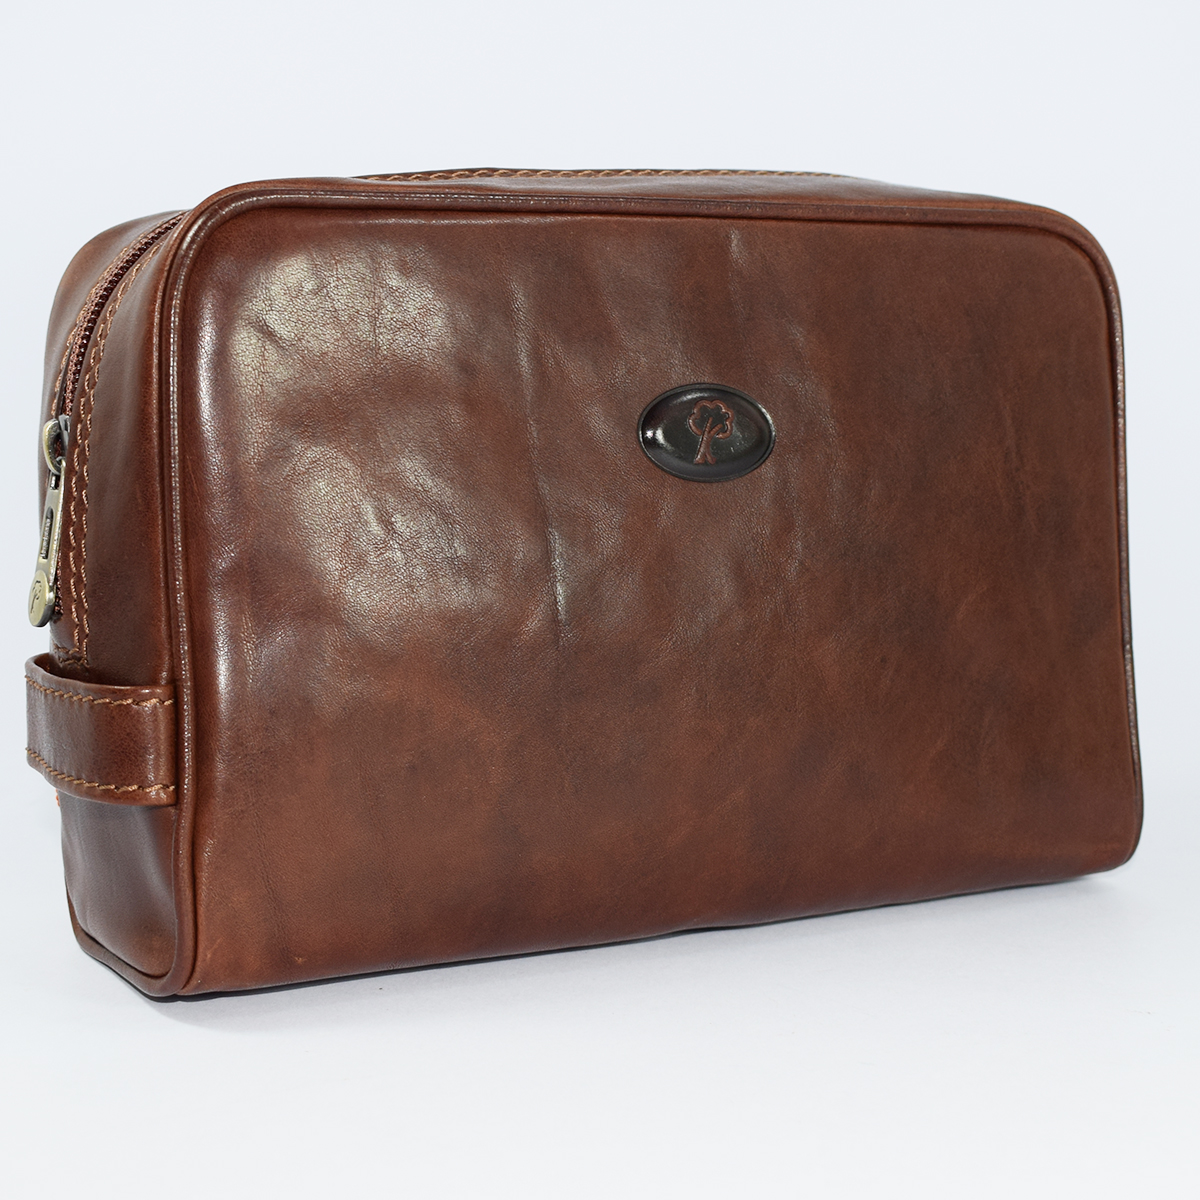 64064 NECESSAIRE UNISEX FOR TRAVEL by Bottega Fiorentina